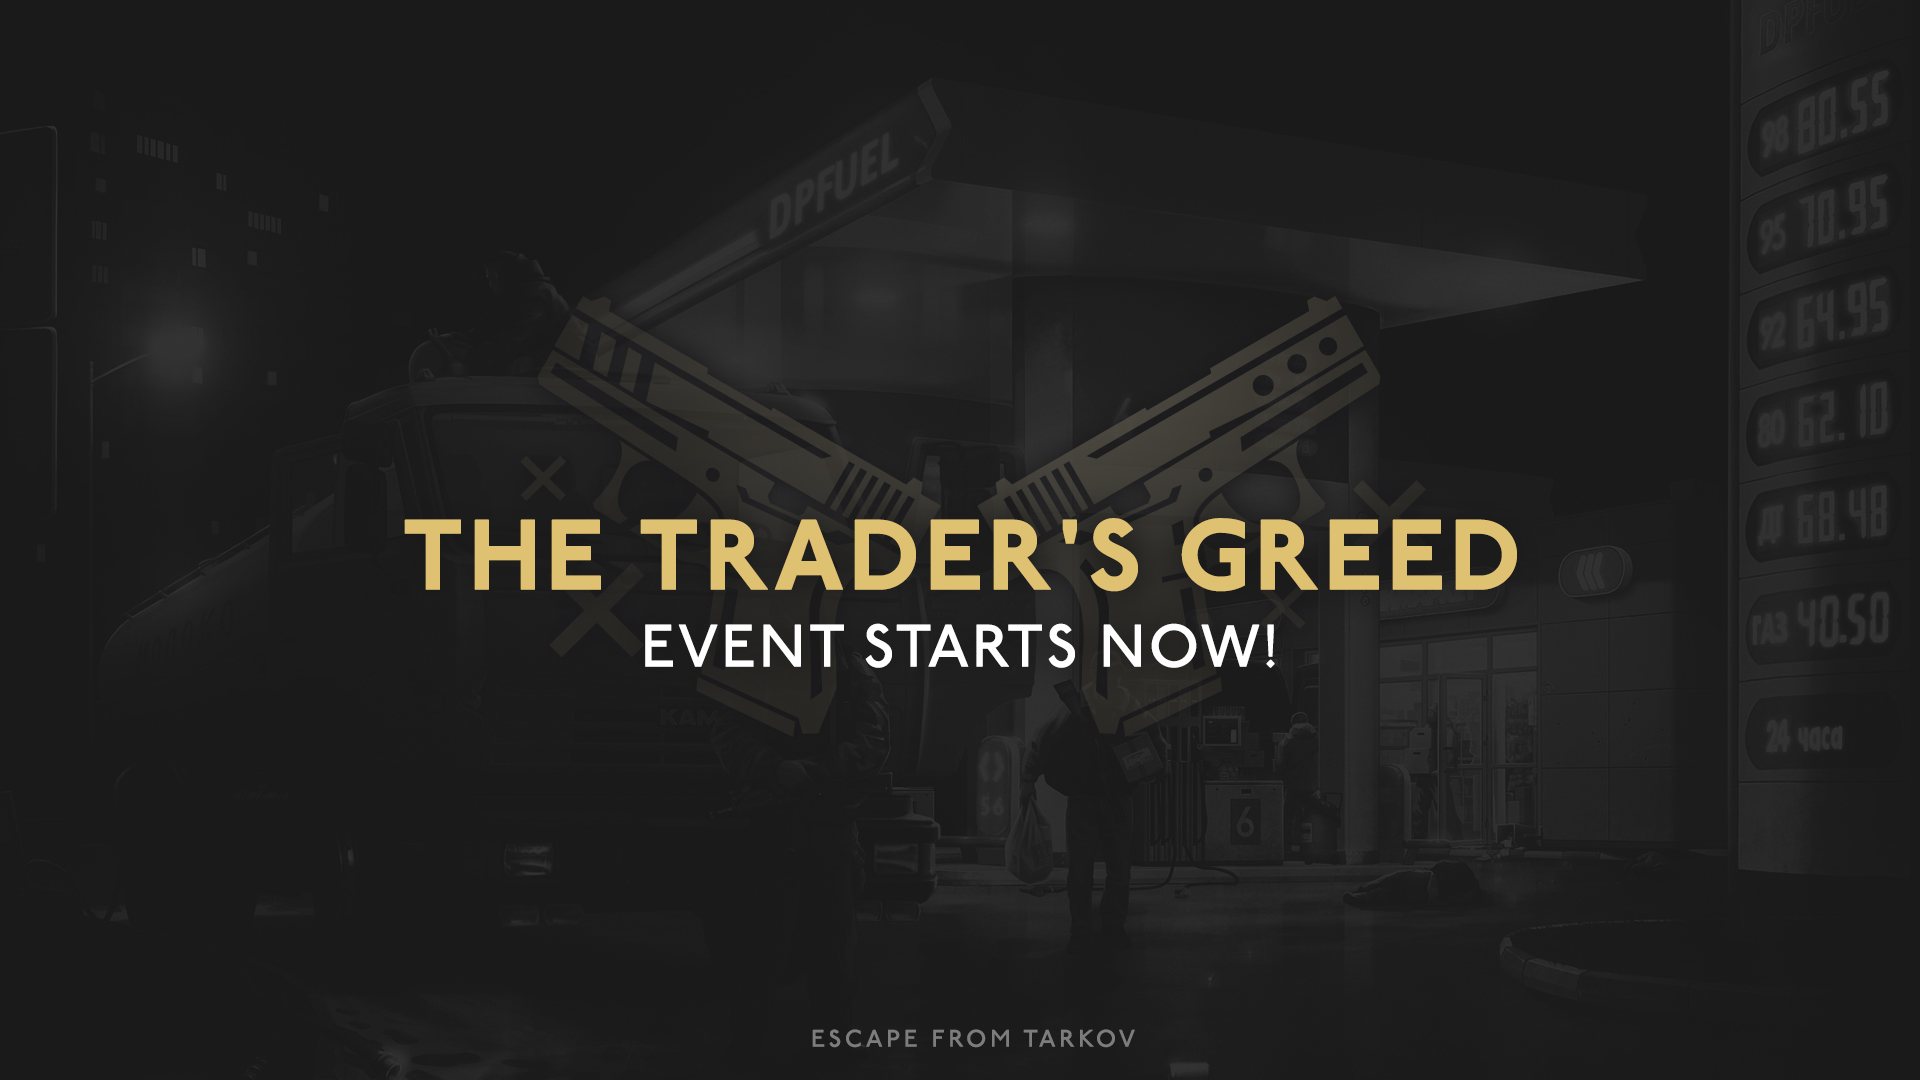 To all the people complaining about the new trader event - Game